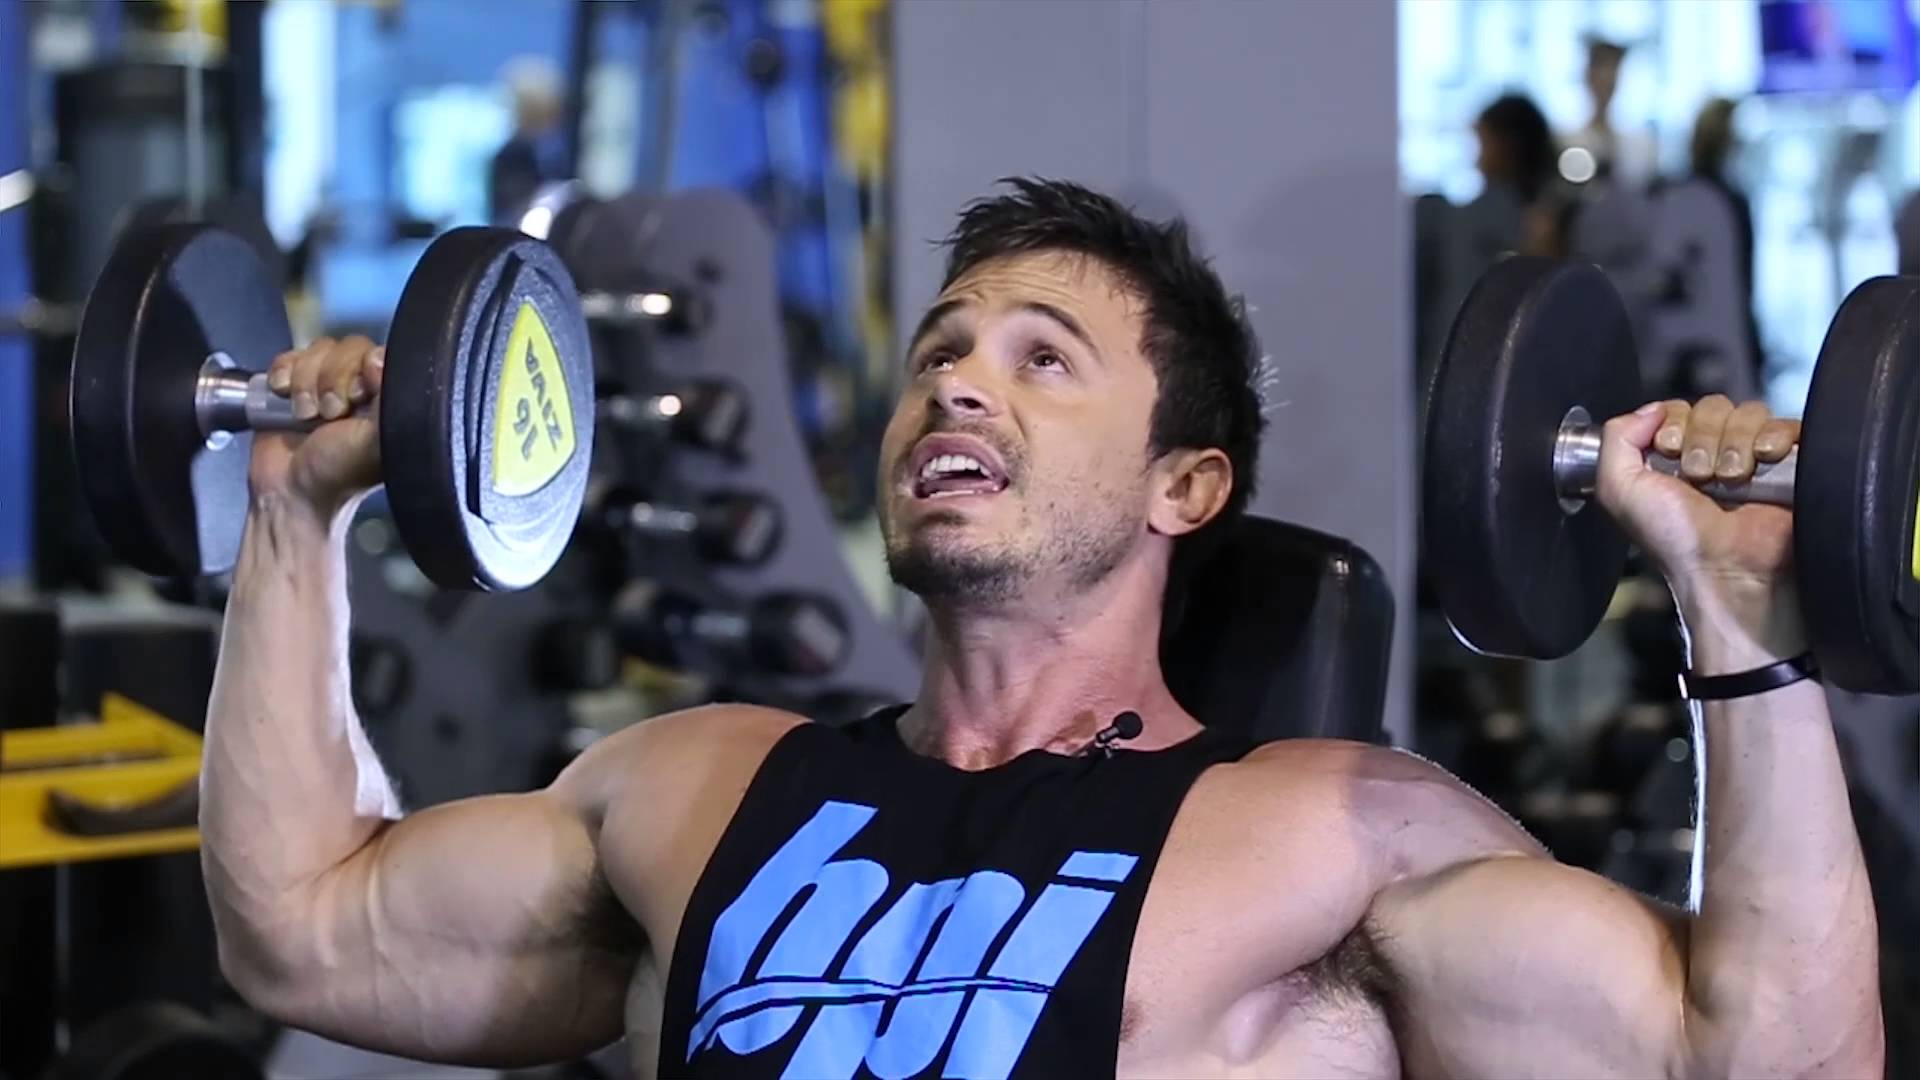 Master-the-Dumbbell-Shoulder-Press-Best-Training-Tips-BPI-Sports-1